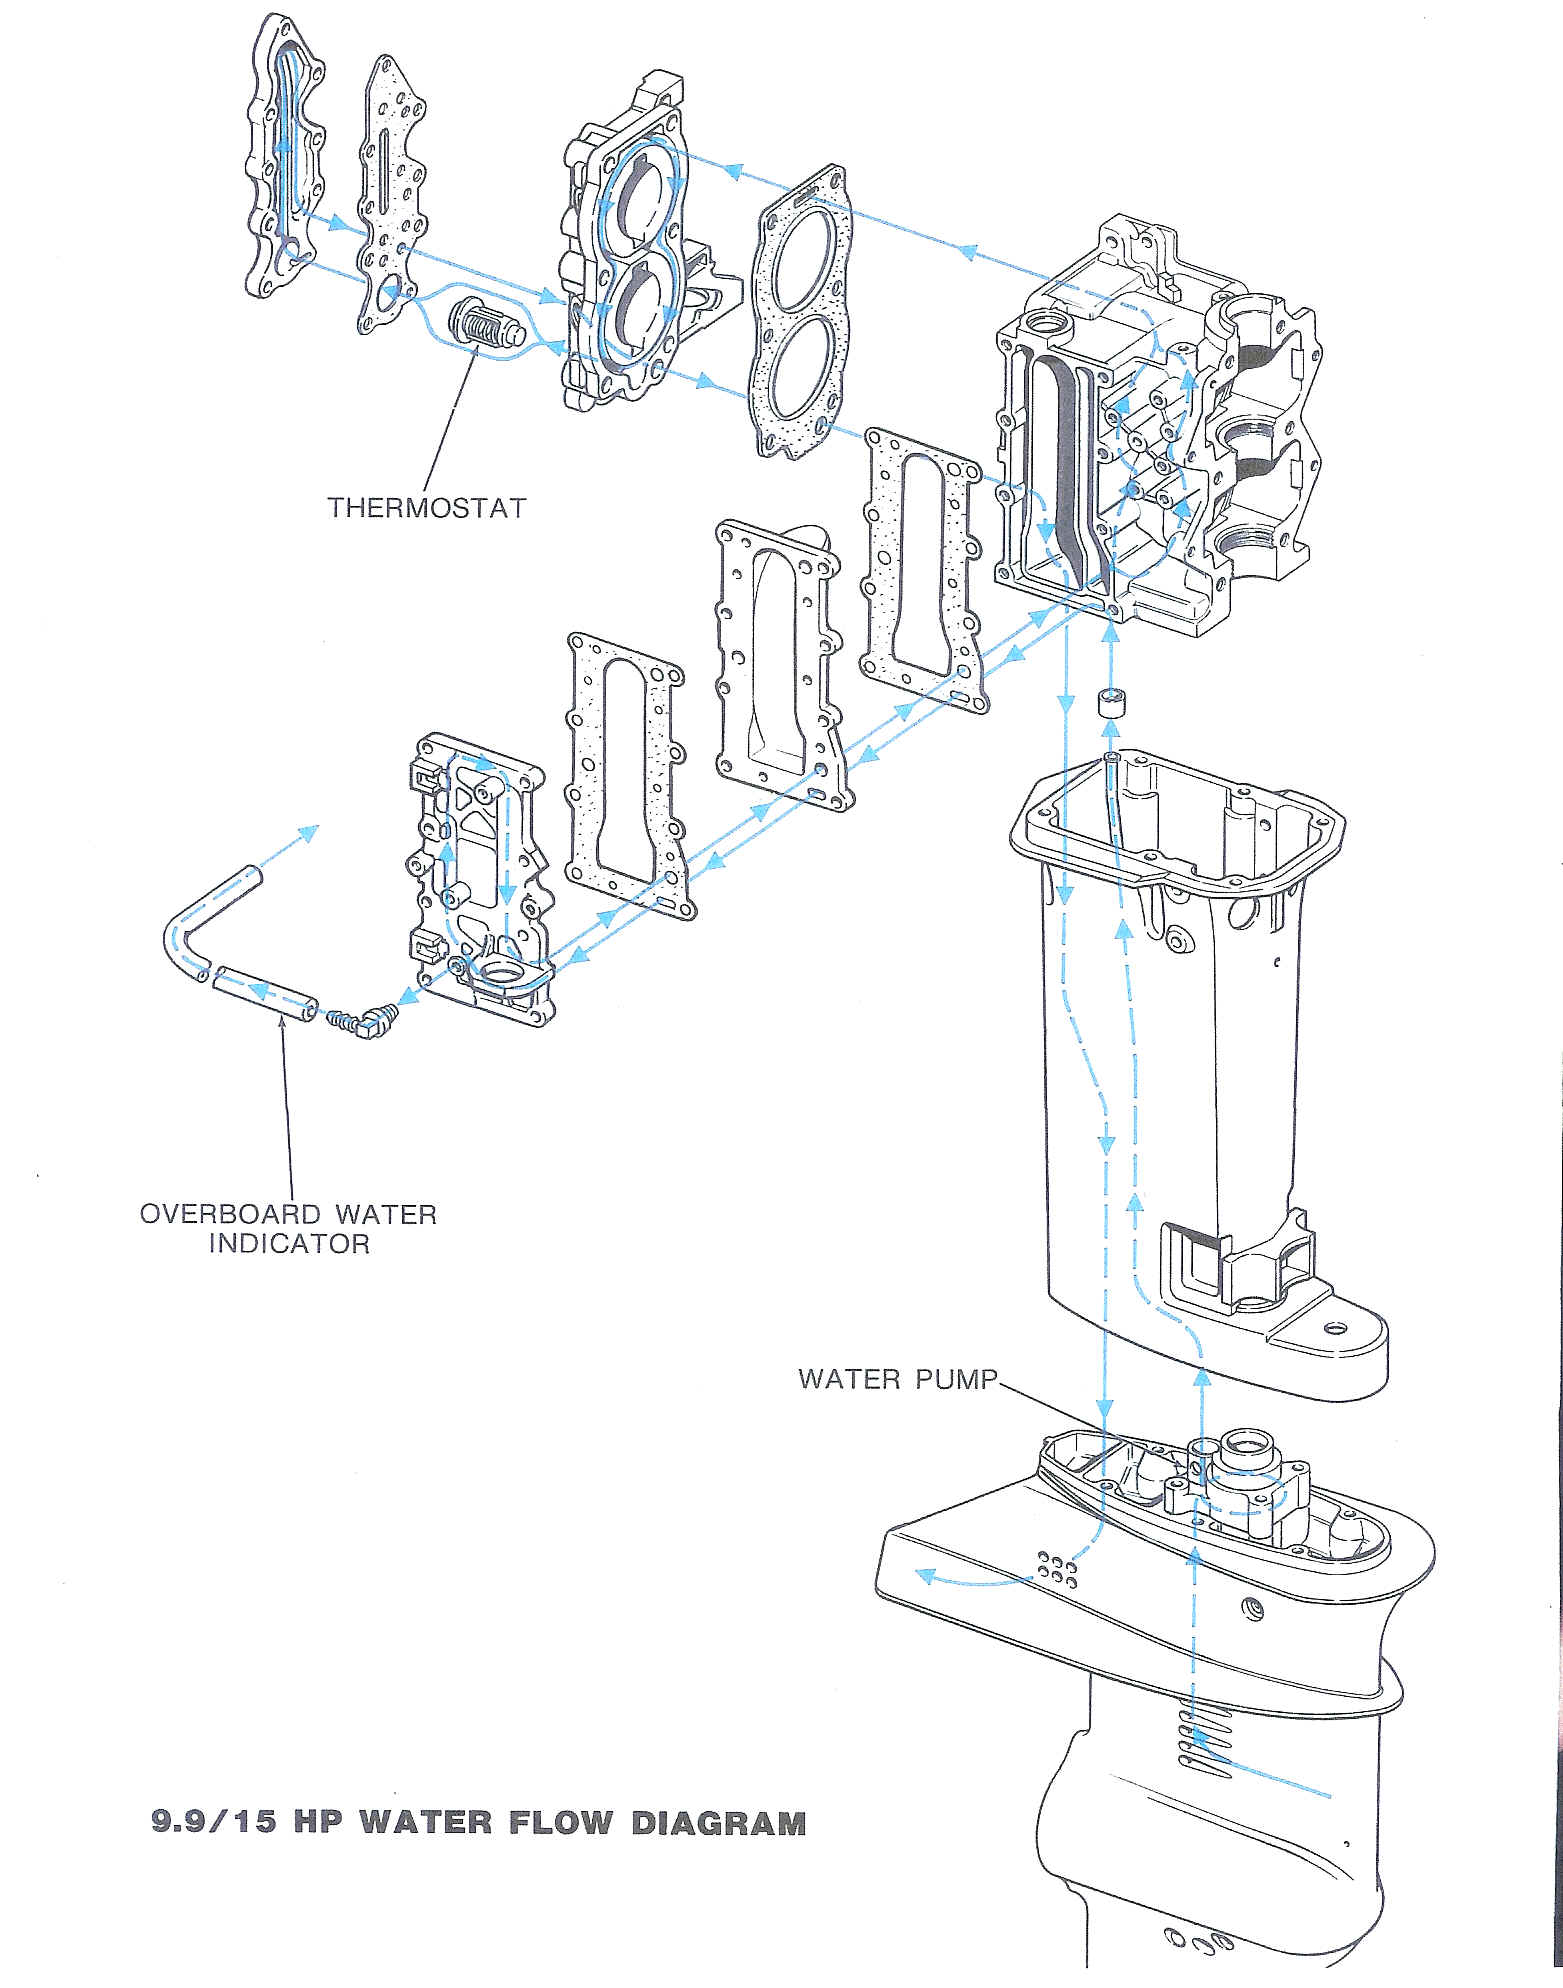 Honda Outboard Lower Unit Parts Diagram Engine Name Yamaha 4 Stroke Motor Water Flow Residential